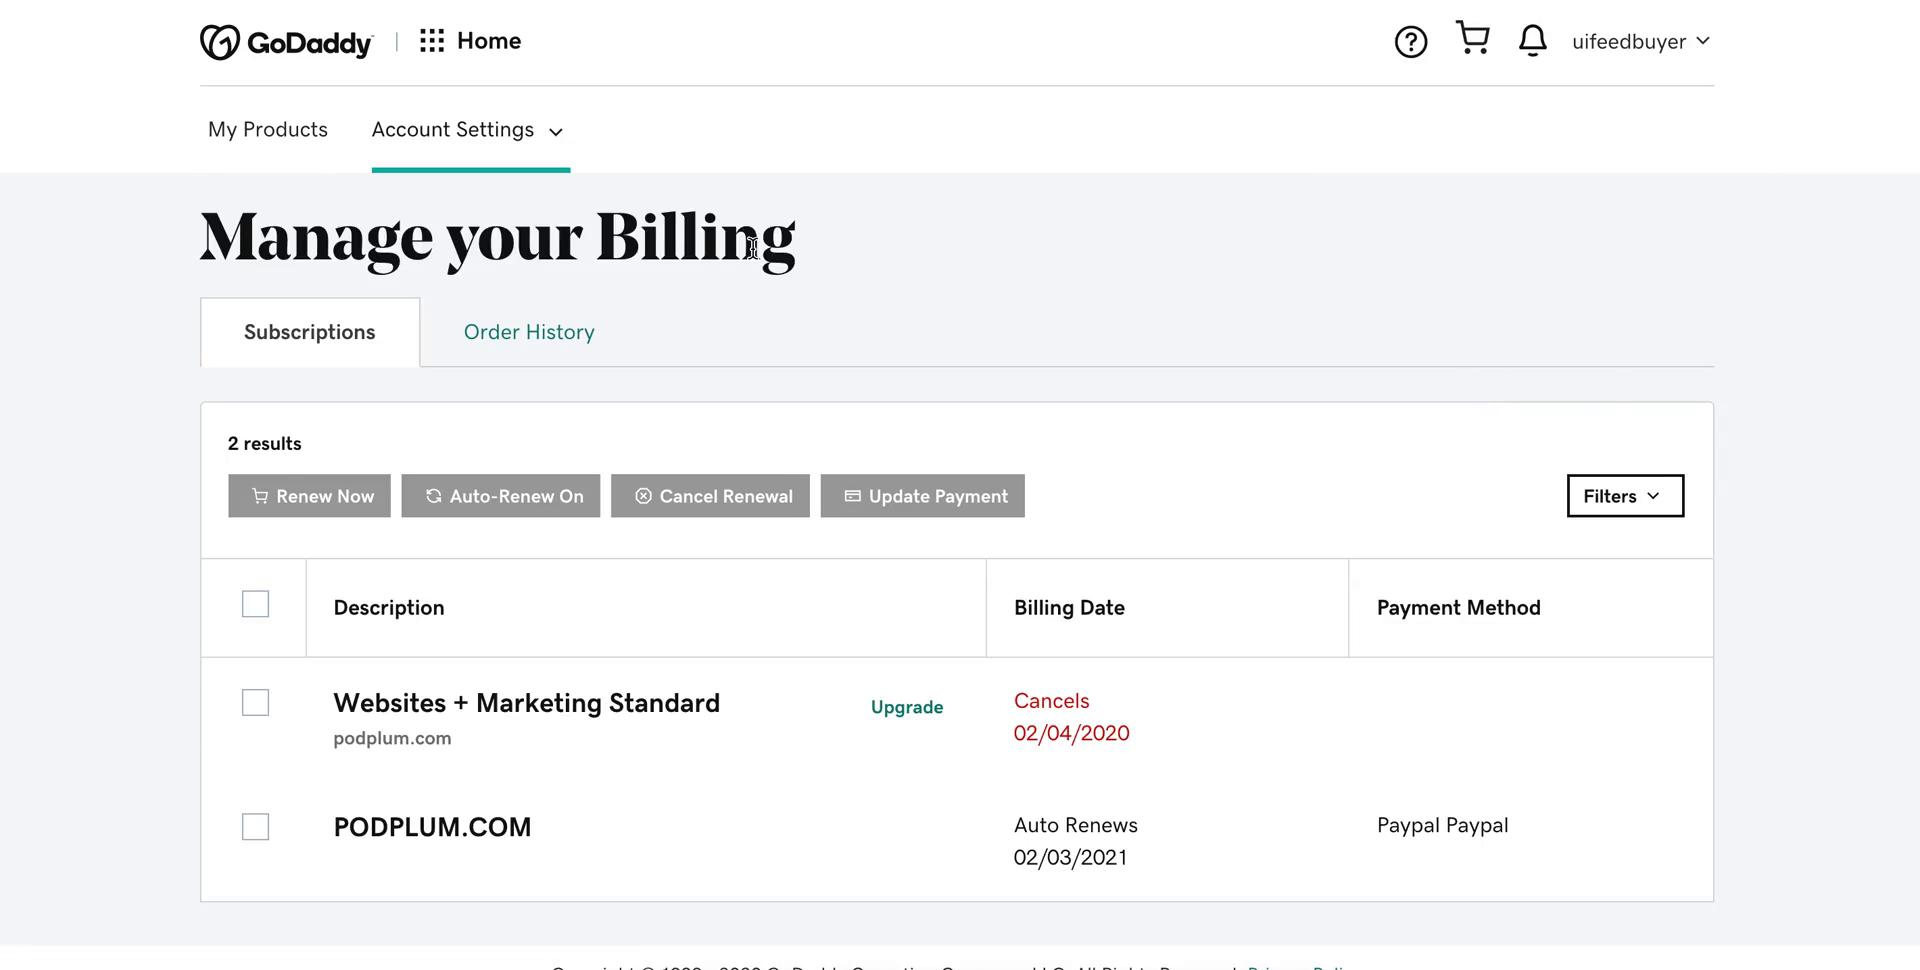 Screenshot of Billing during Cancelling your subscription on GoDaddy user flow